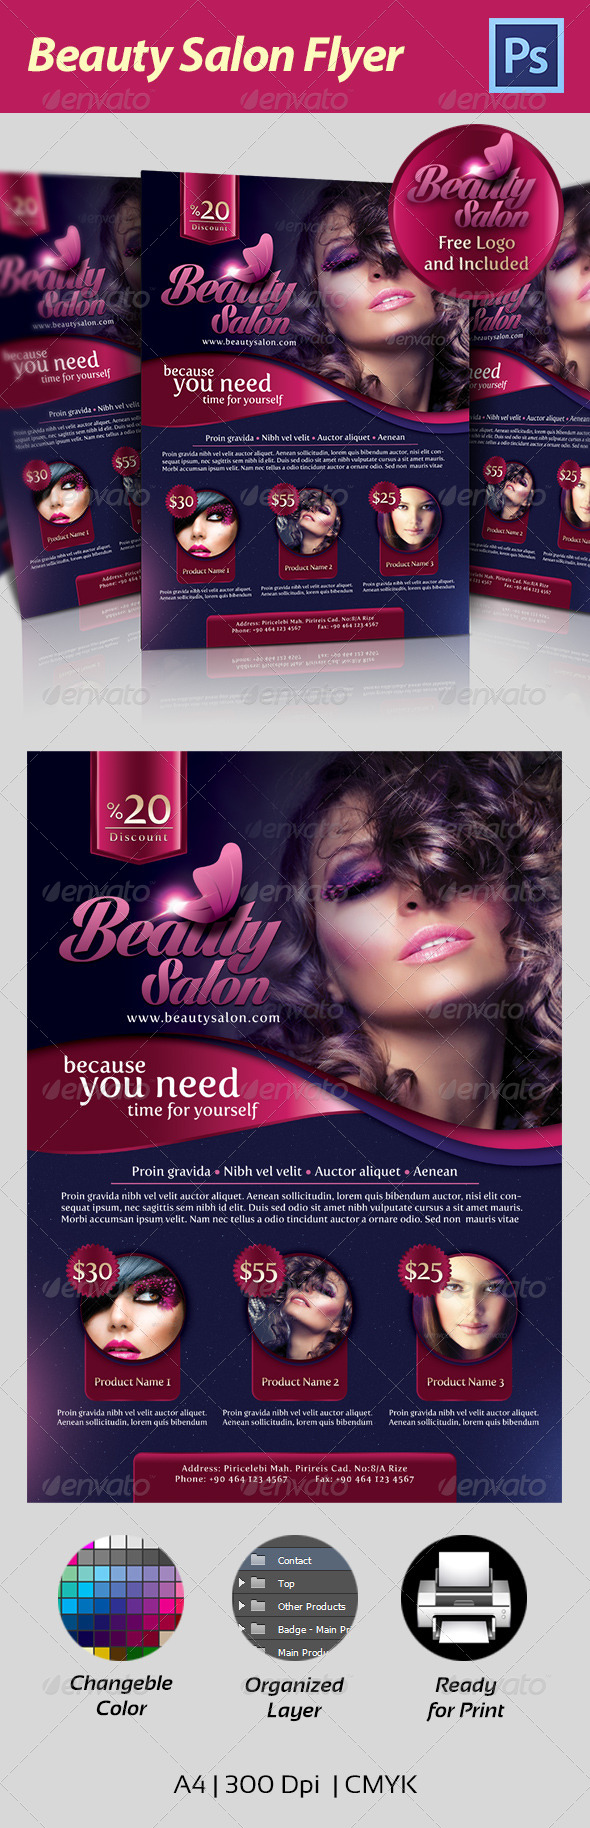 GraphicRiver Beauty Salon Flyer 4657353